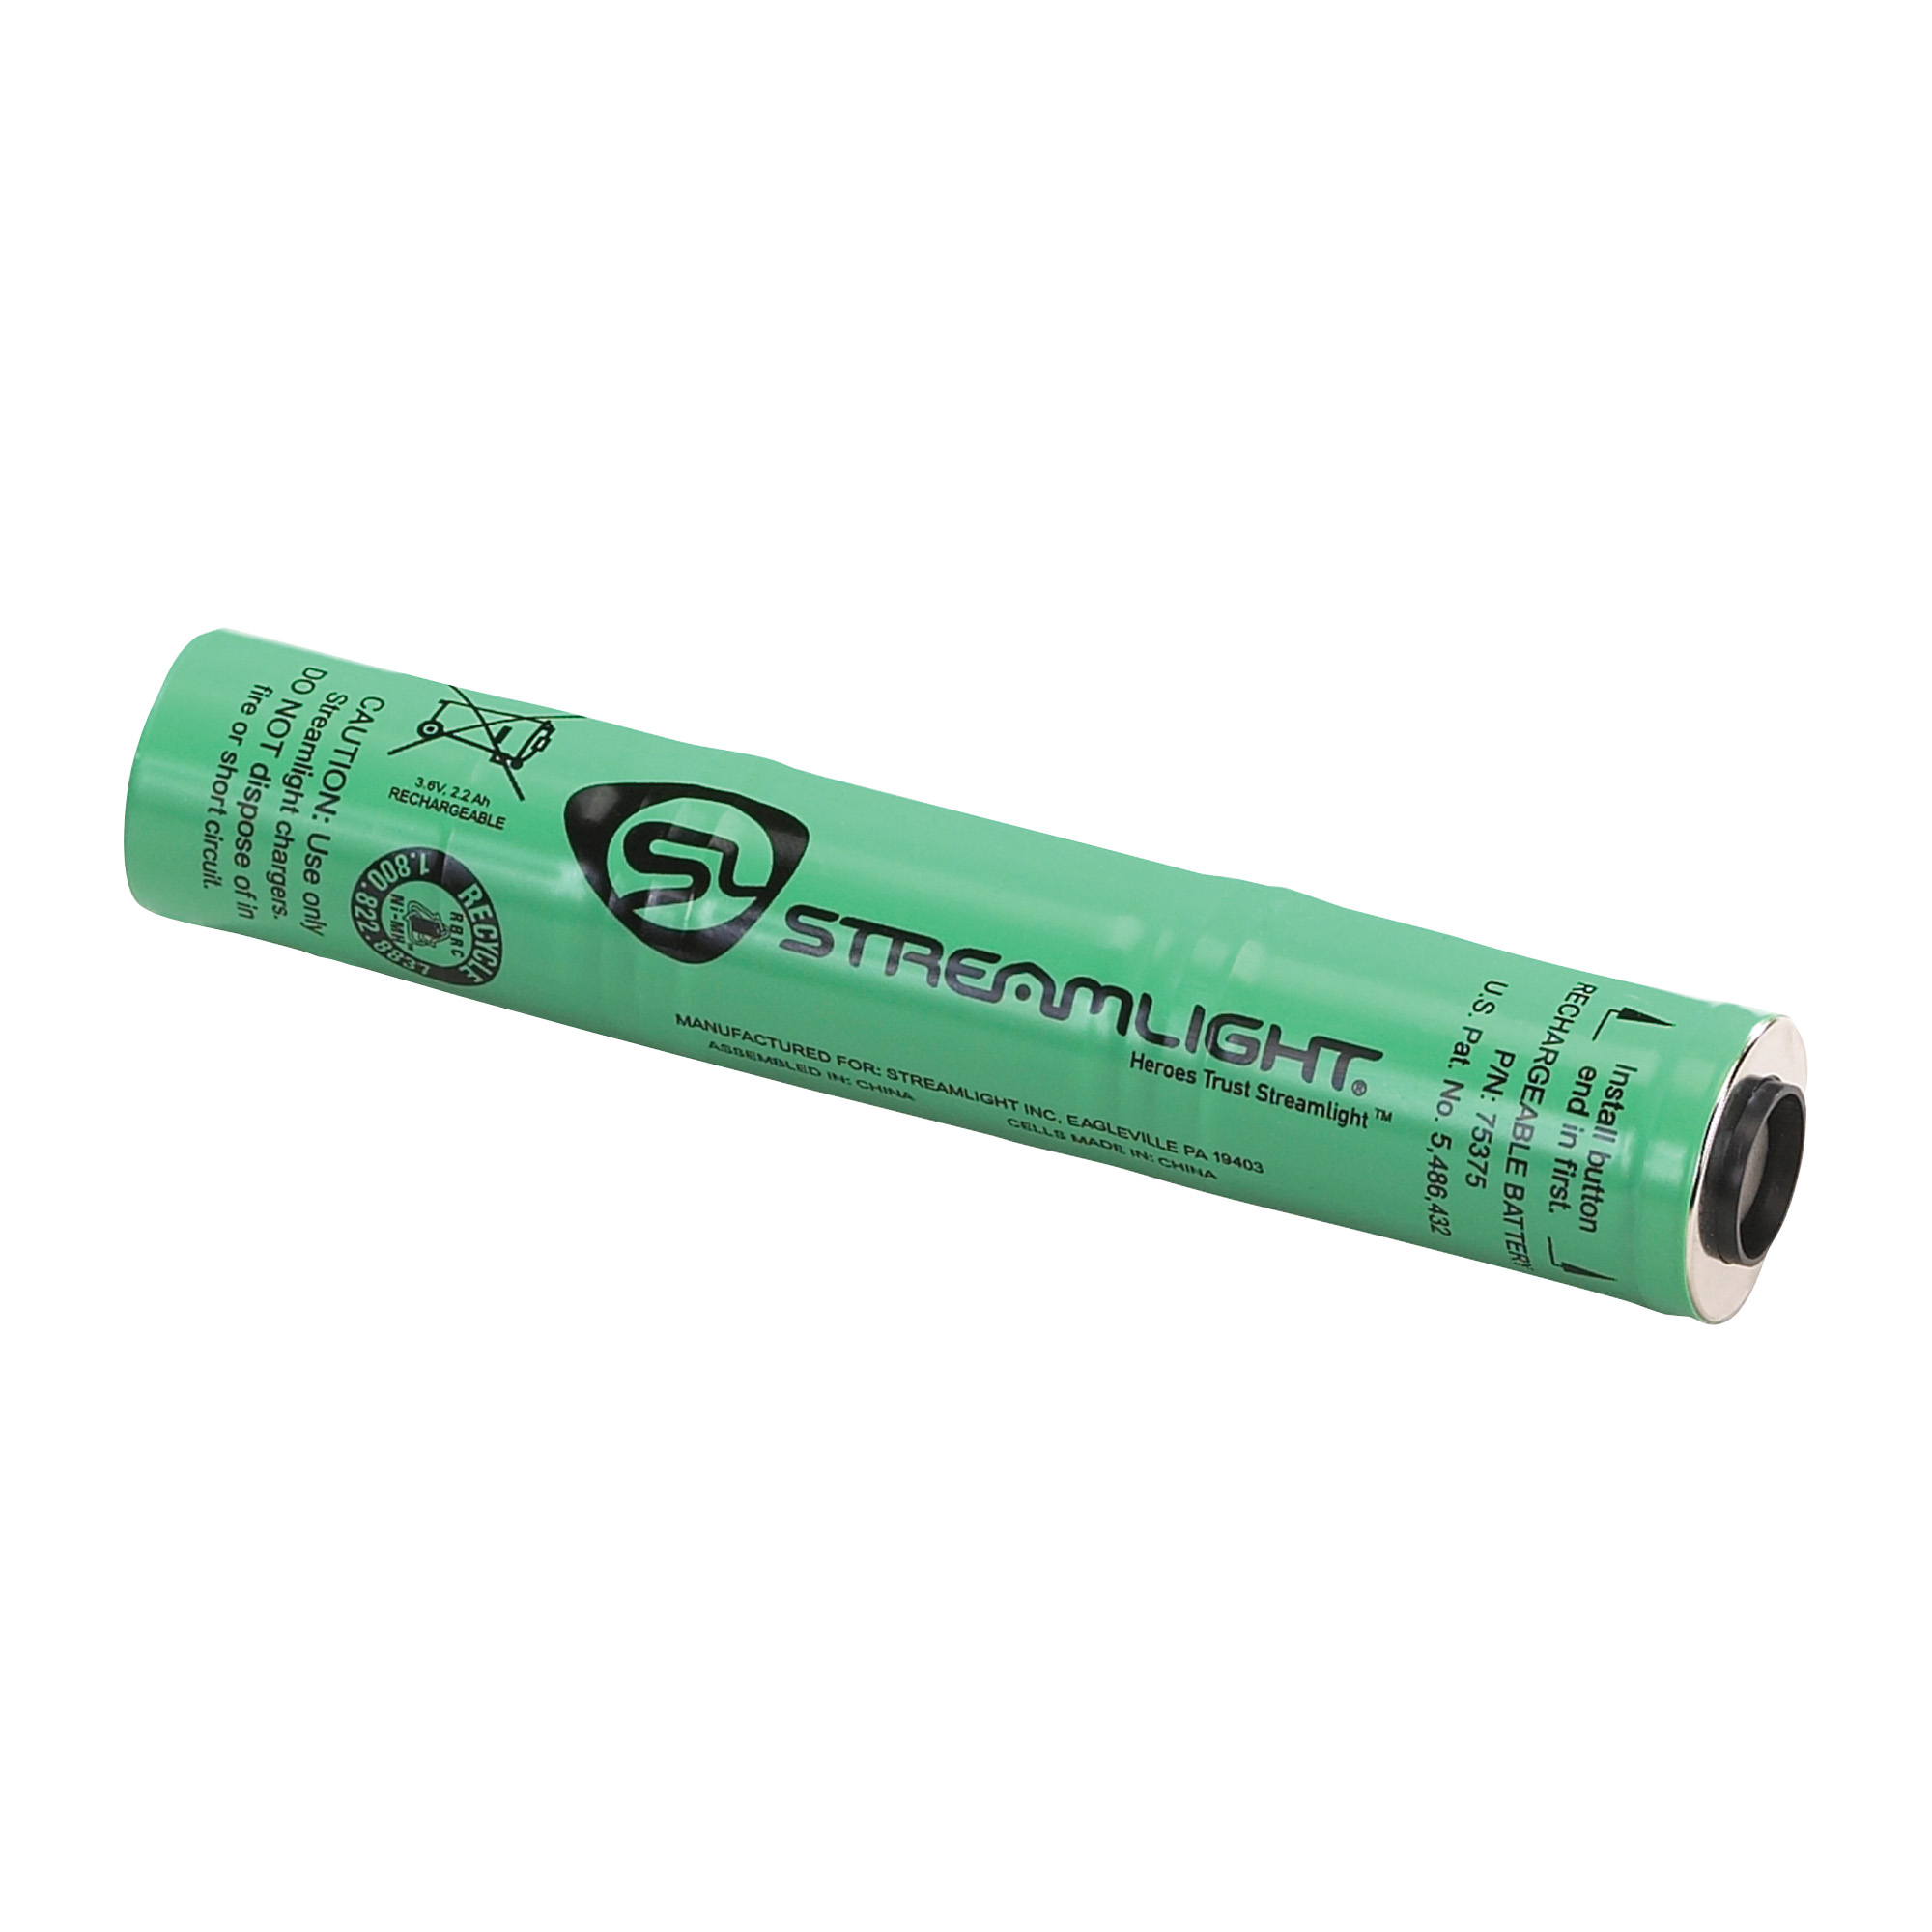 Streamlight OEM NIMH battery for Stinger light.